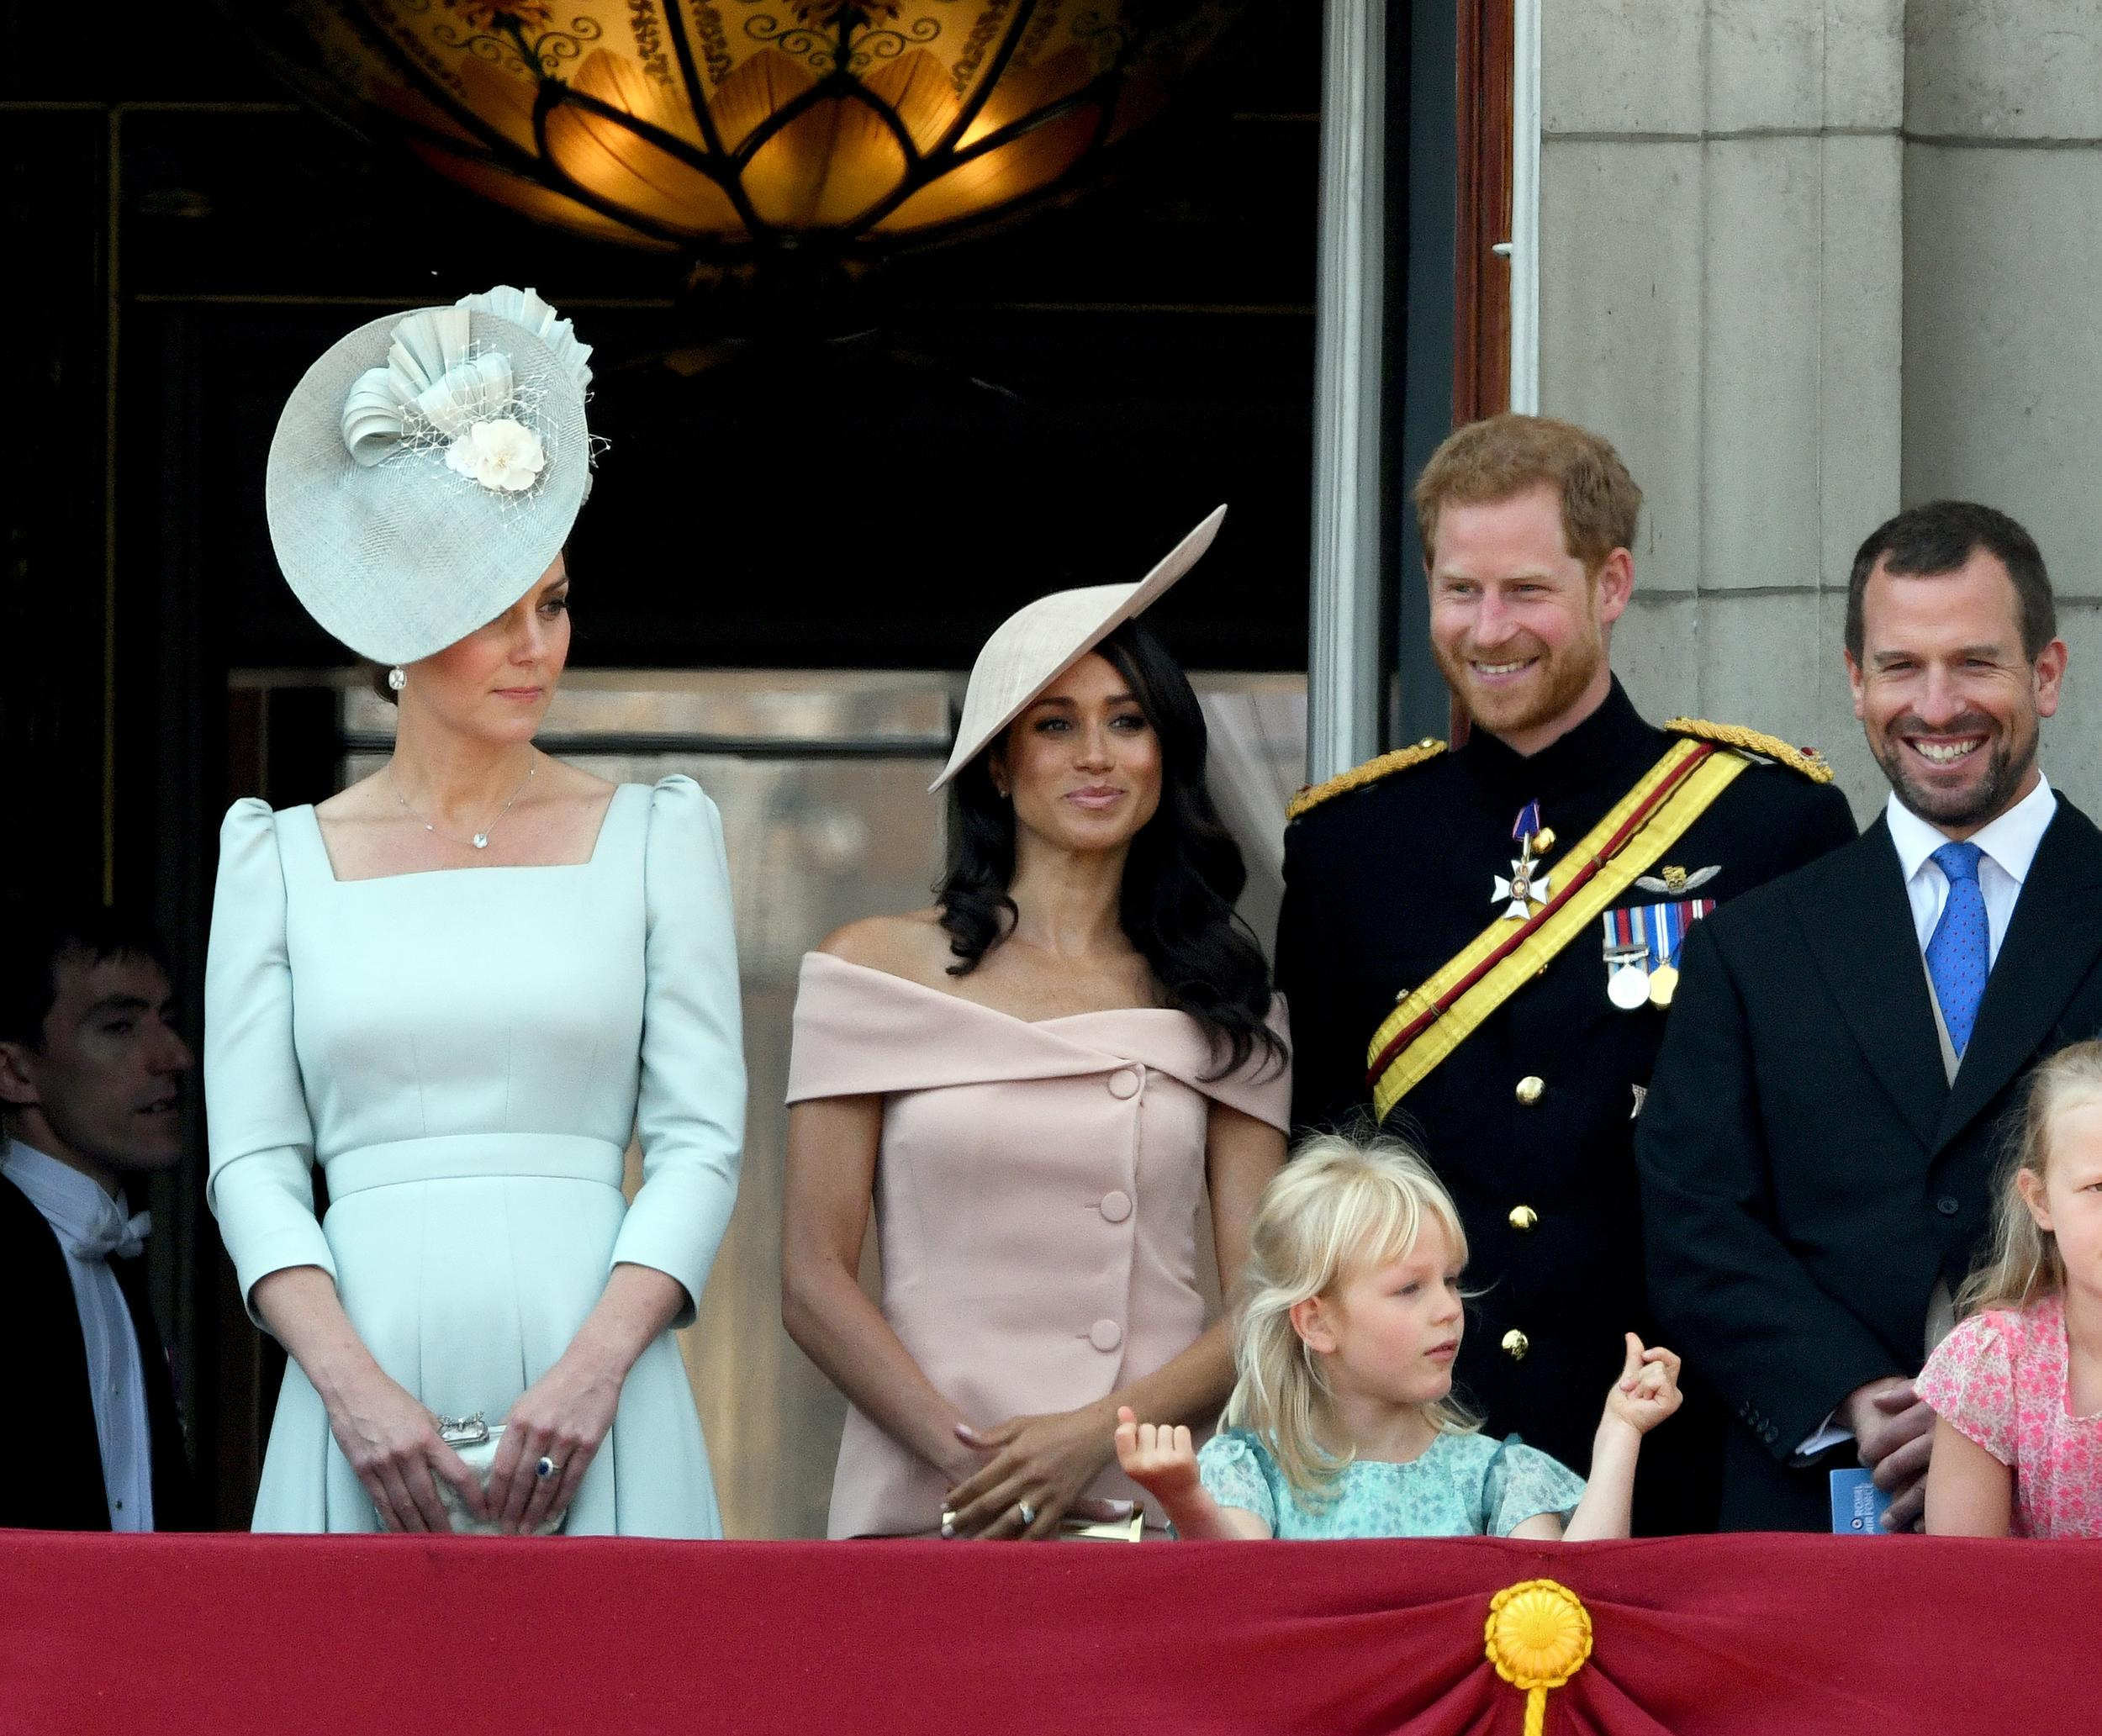 Catherine, Duchess of Cambridge, Meghan, Duchess of Sussex, Prince Harry, Duke of Sussex, Isla Phillips and Peter Phillips stand on the balcony of Buckingham Palace in London during Trooping the Colour